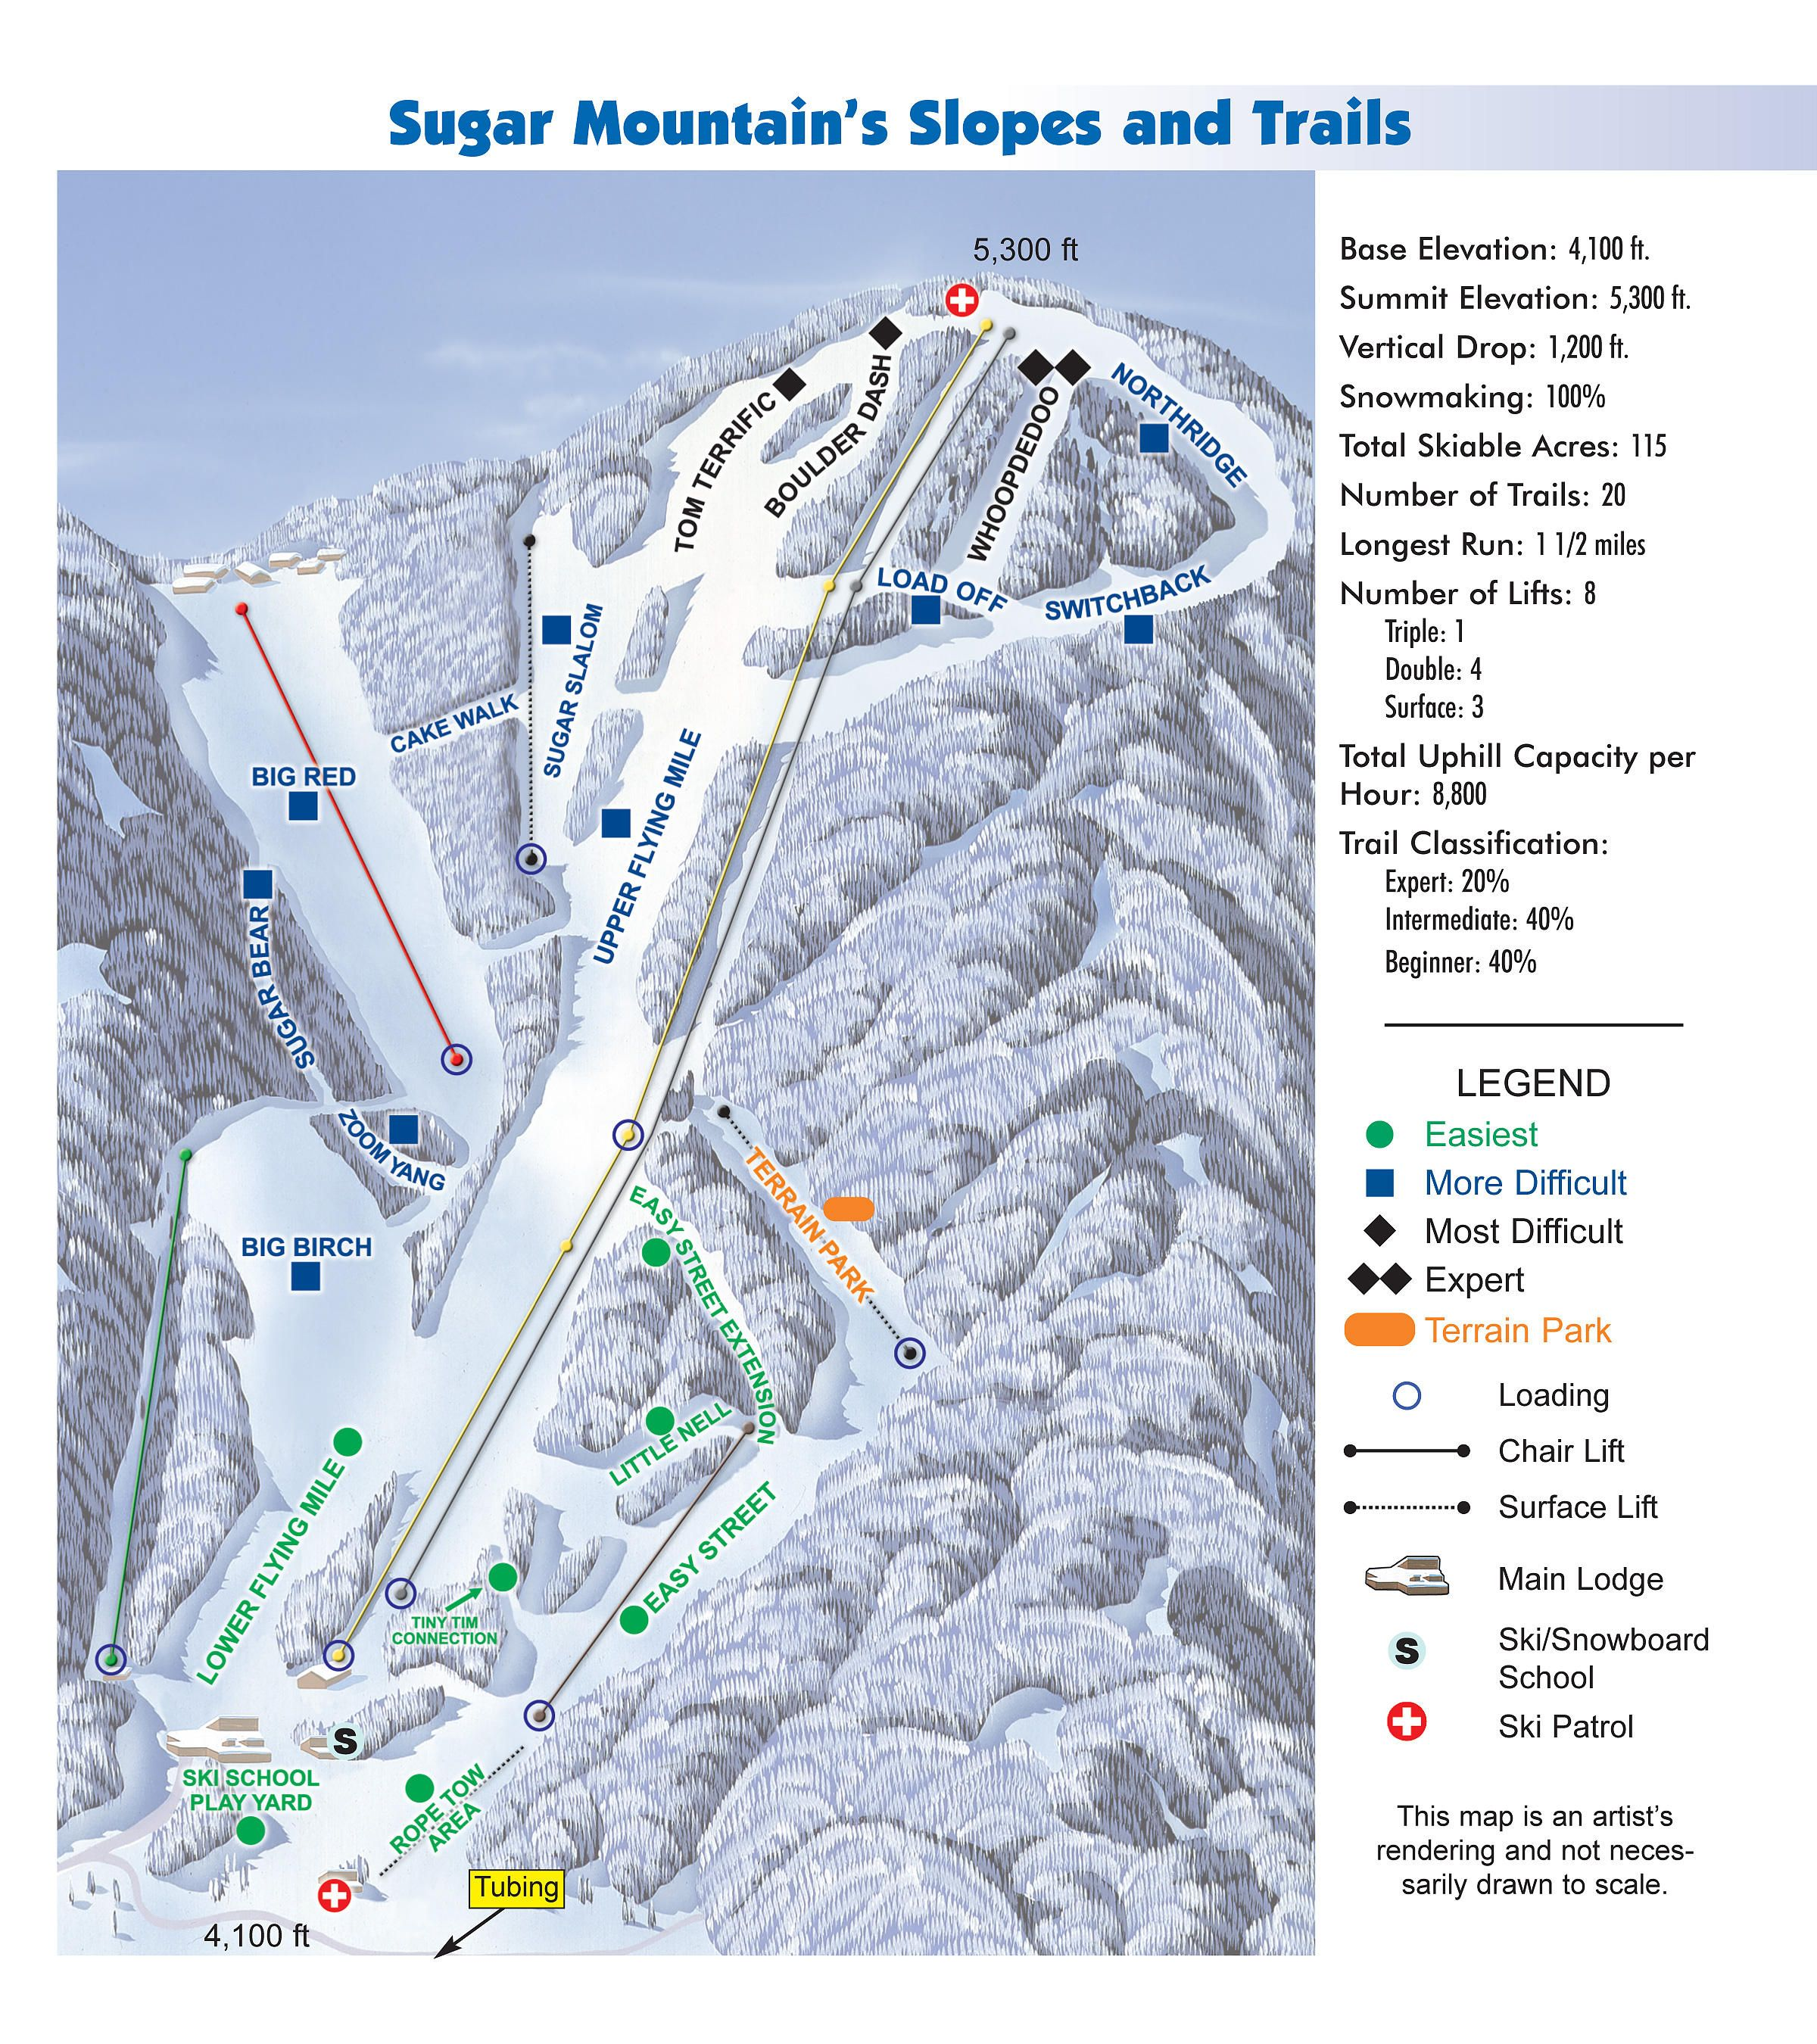 Sugar Mountain, NC | Places I have visited in 2019 | Beech ... on sapphire valley nc map, nc lake map, nc elevation map, asheville nc map, nc art map, nc terrain map, nc mountain map, nc snow map, nc city map, nc travel map, nc school map, nc water map, nc wine map, beech mountain north carolina map, nc restaurant map, nc beach map, nc boating map, nc golf map, nc fun map, nc camping map,